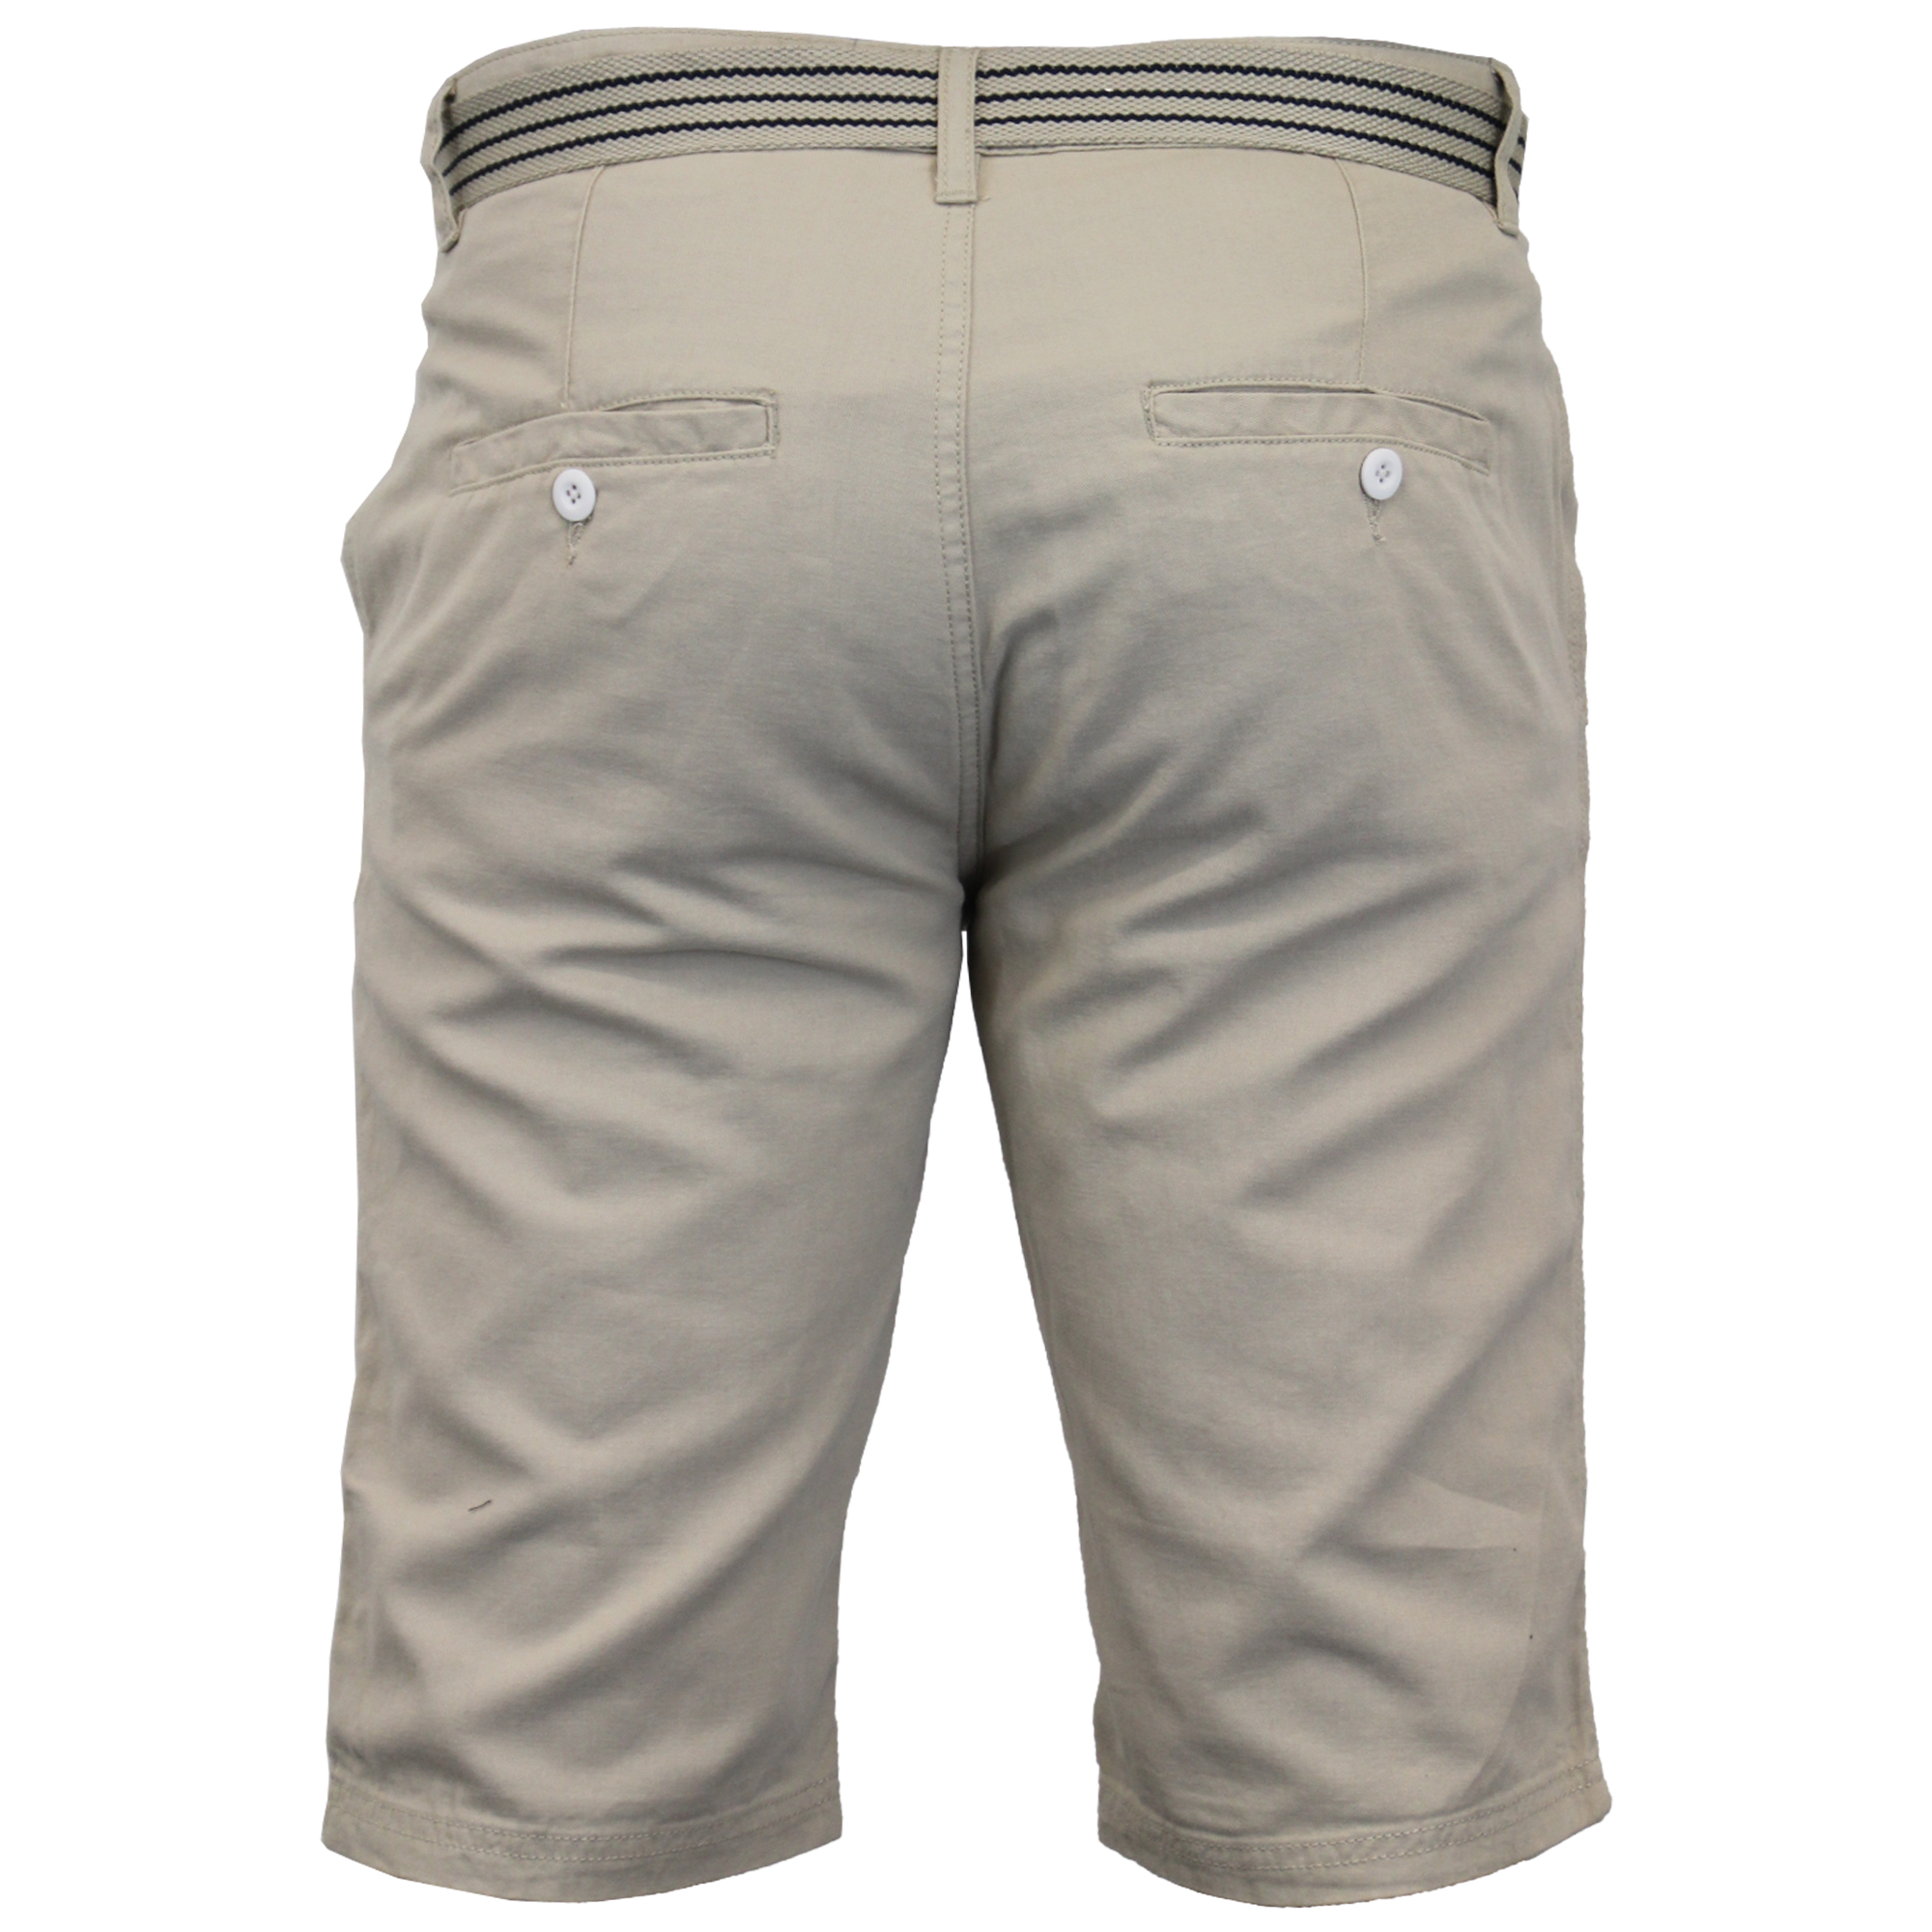 Mens-Chino-Shorts-Threadbare-Cotton-Oxford-Belted-Loyalty-amp-Faith-Seven-Series thumbnail 53